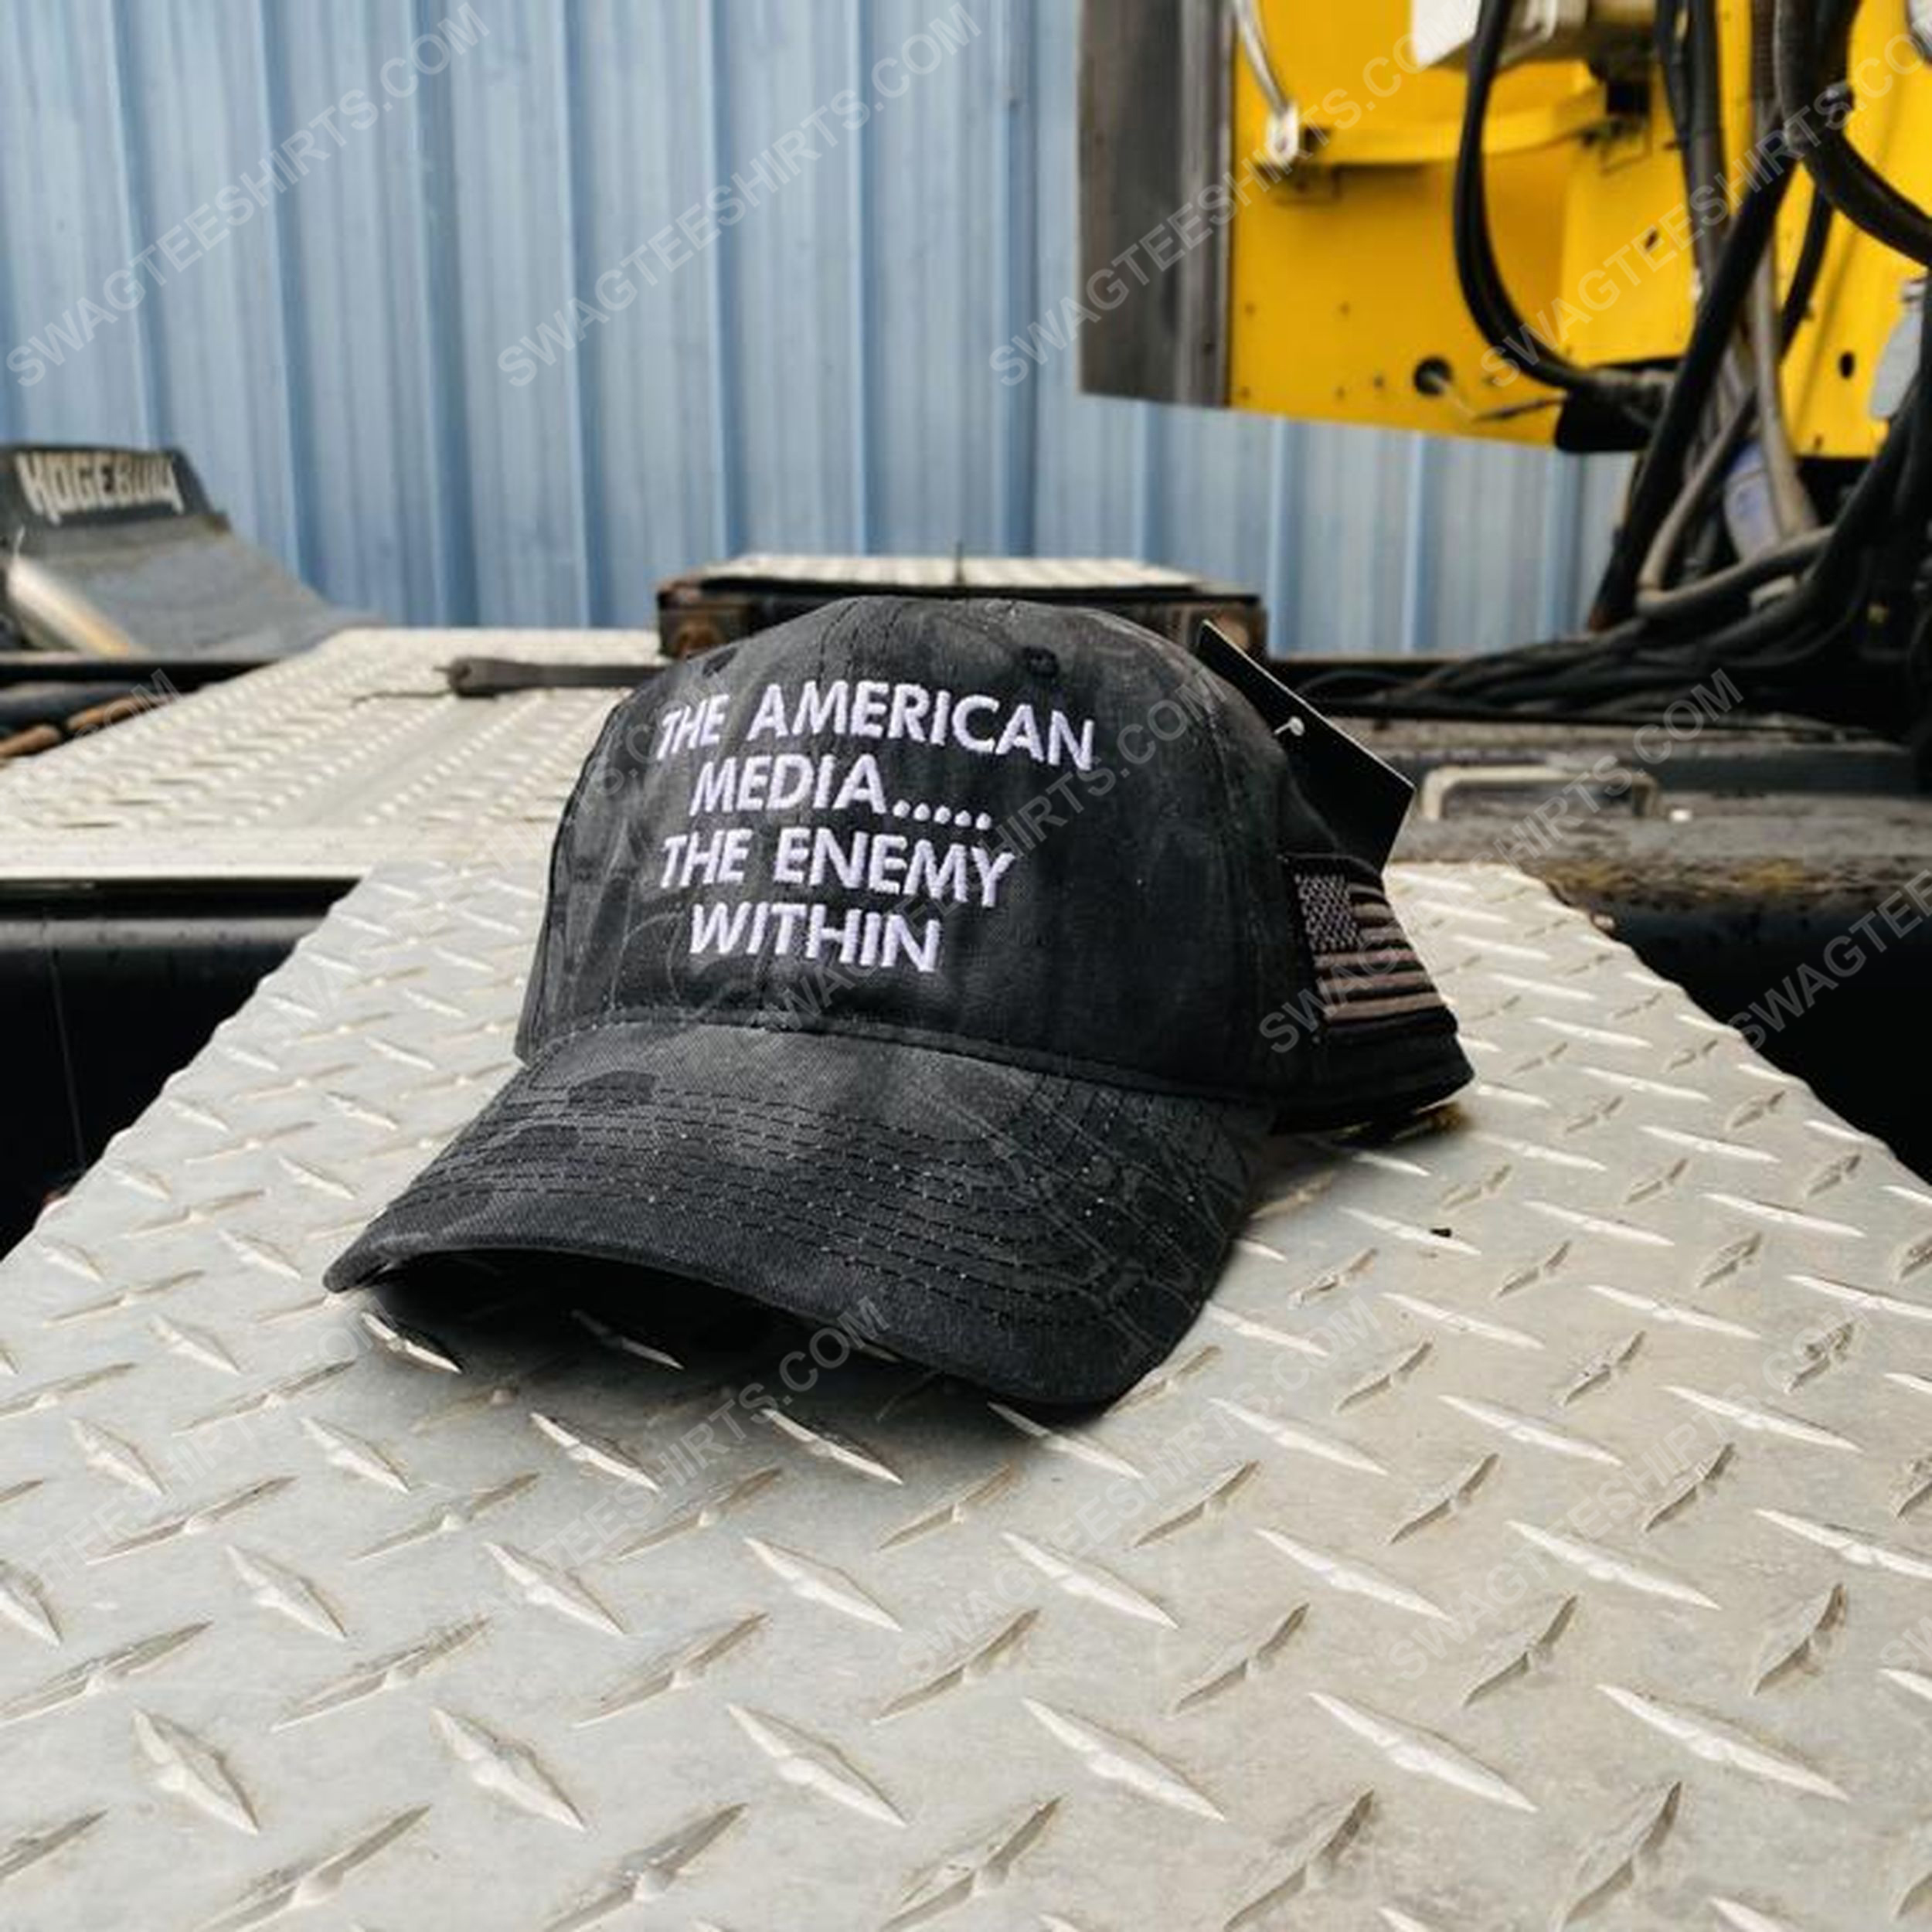 The american media the enemy within full print classic hat 1 - Copy (3)